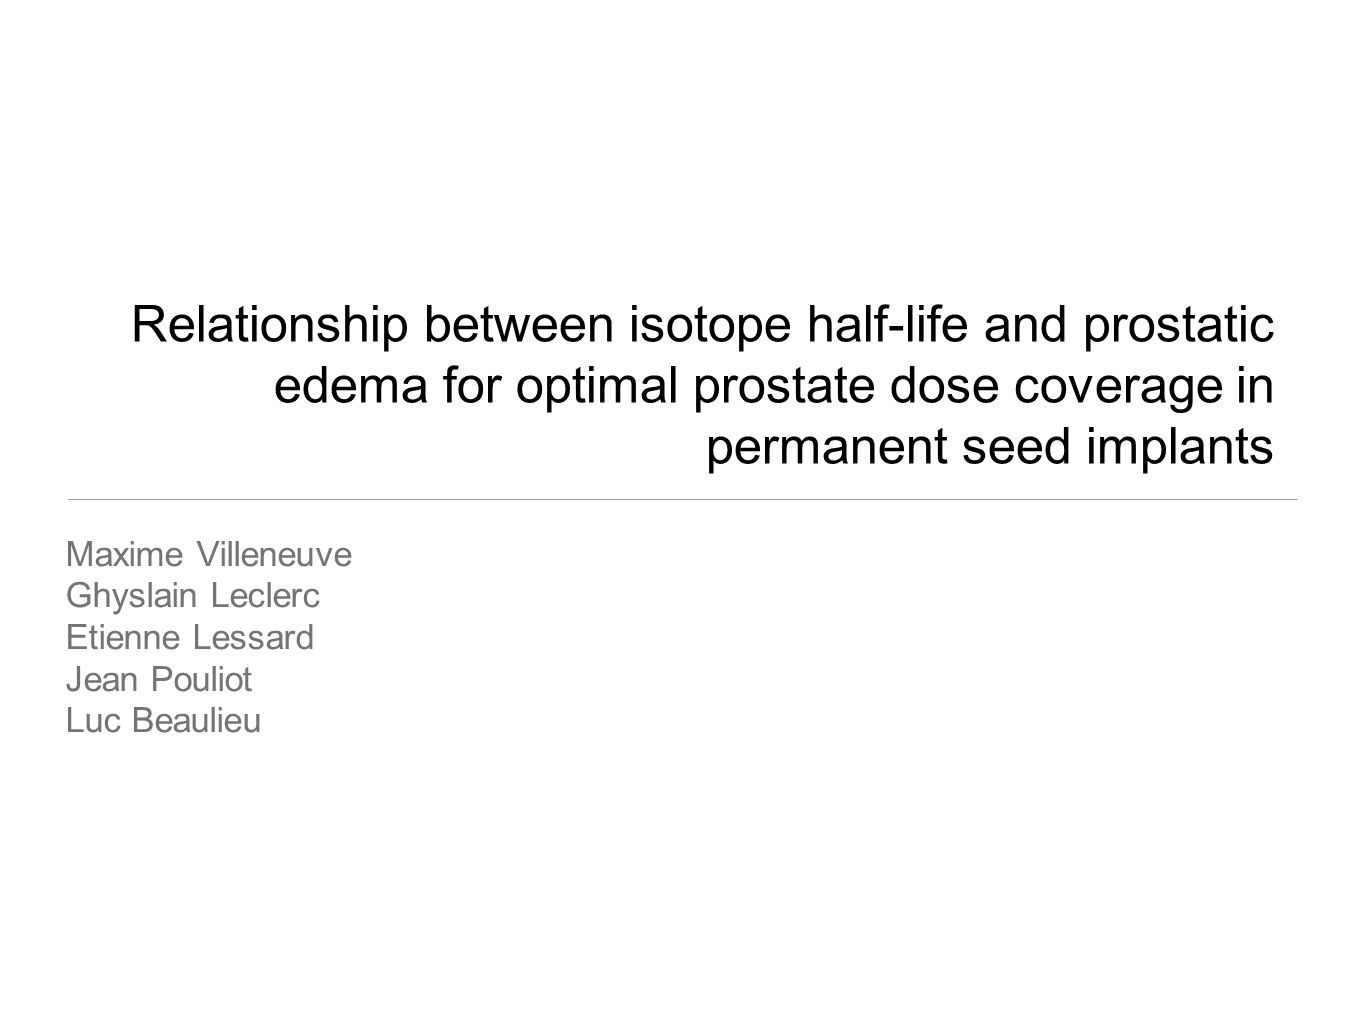 Relationship between isotope half-life and prostatic edema for optimal prostate dose coverage in permanent seed implants Maxime Villeneuve Ghyslain Leclerc Etienne Lessard Jean Pouliot Luc Beaulieu